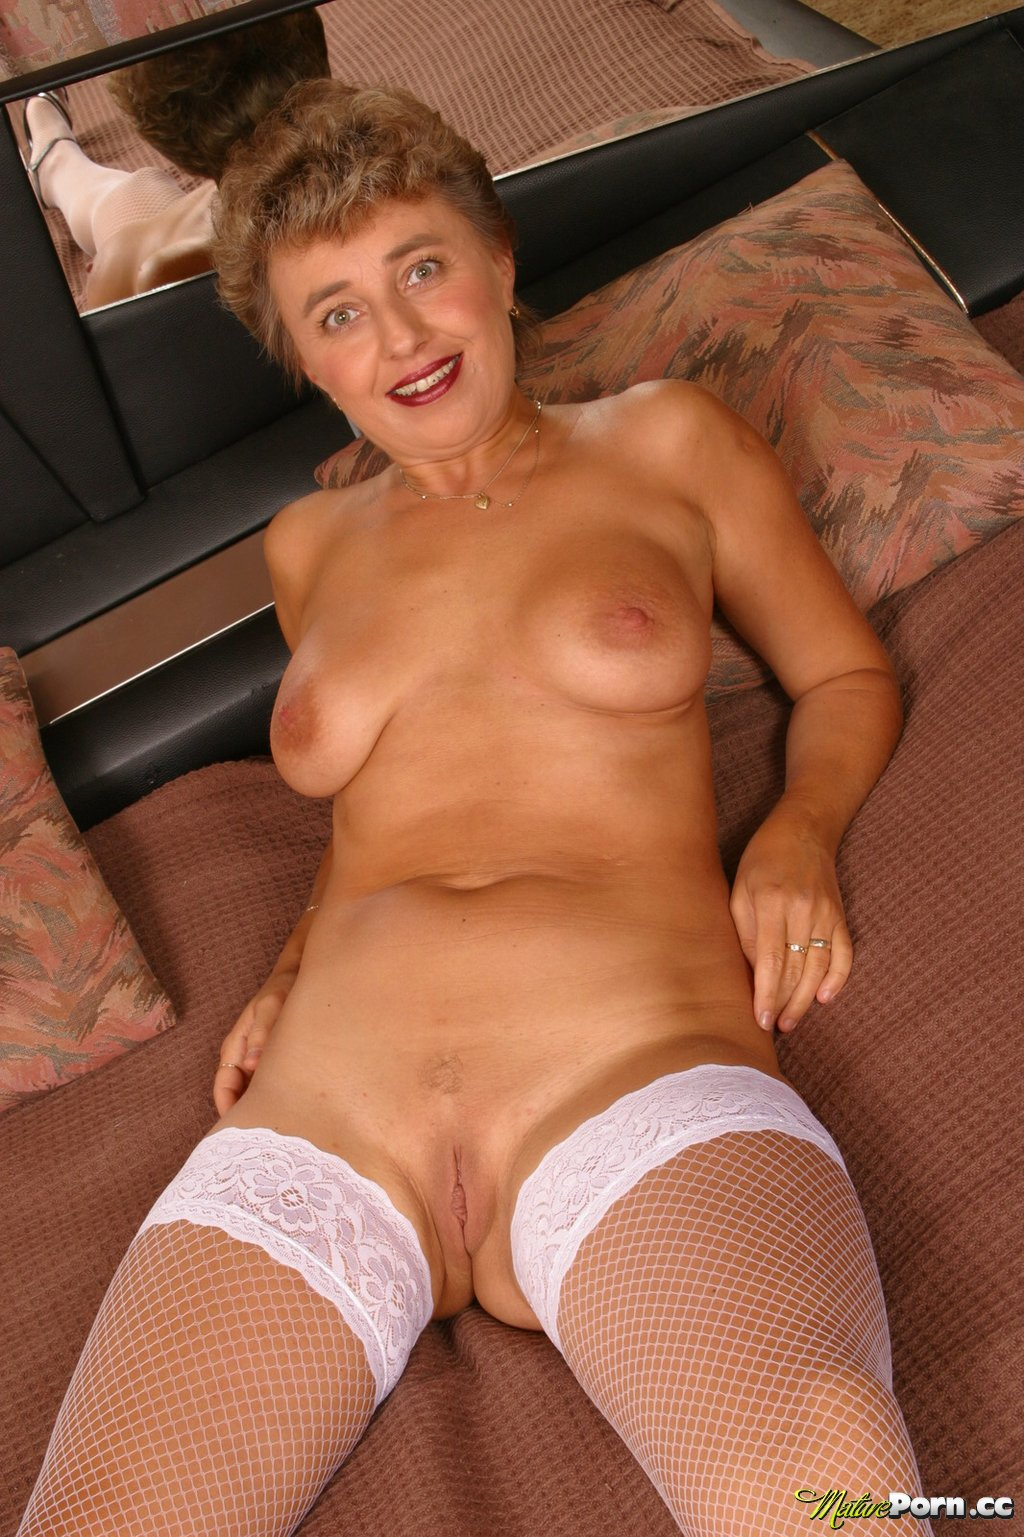 Free mature video streams